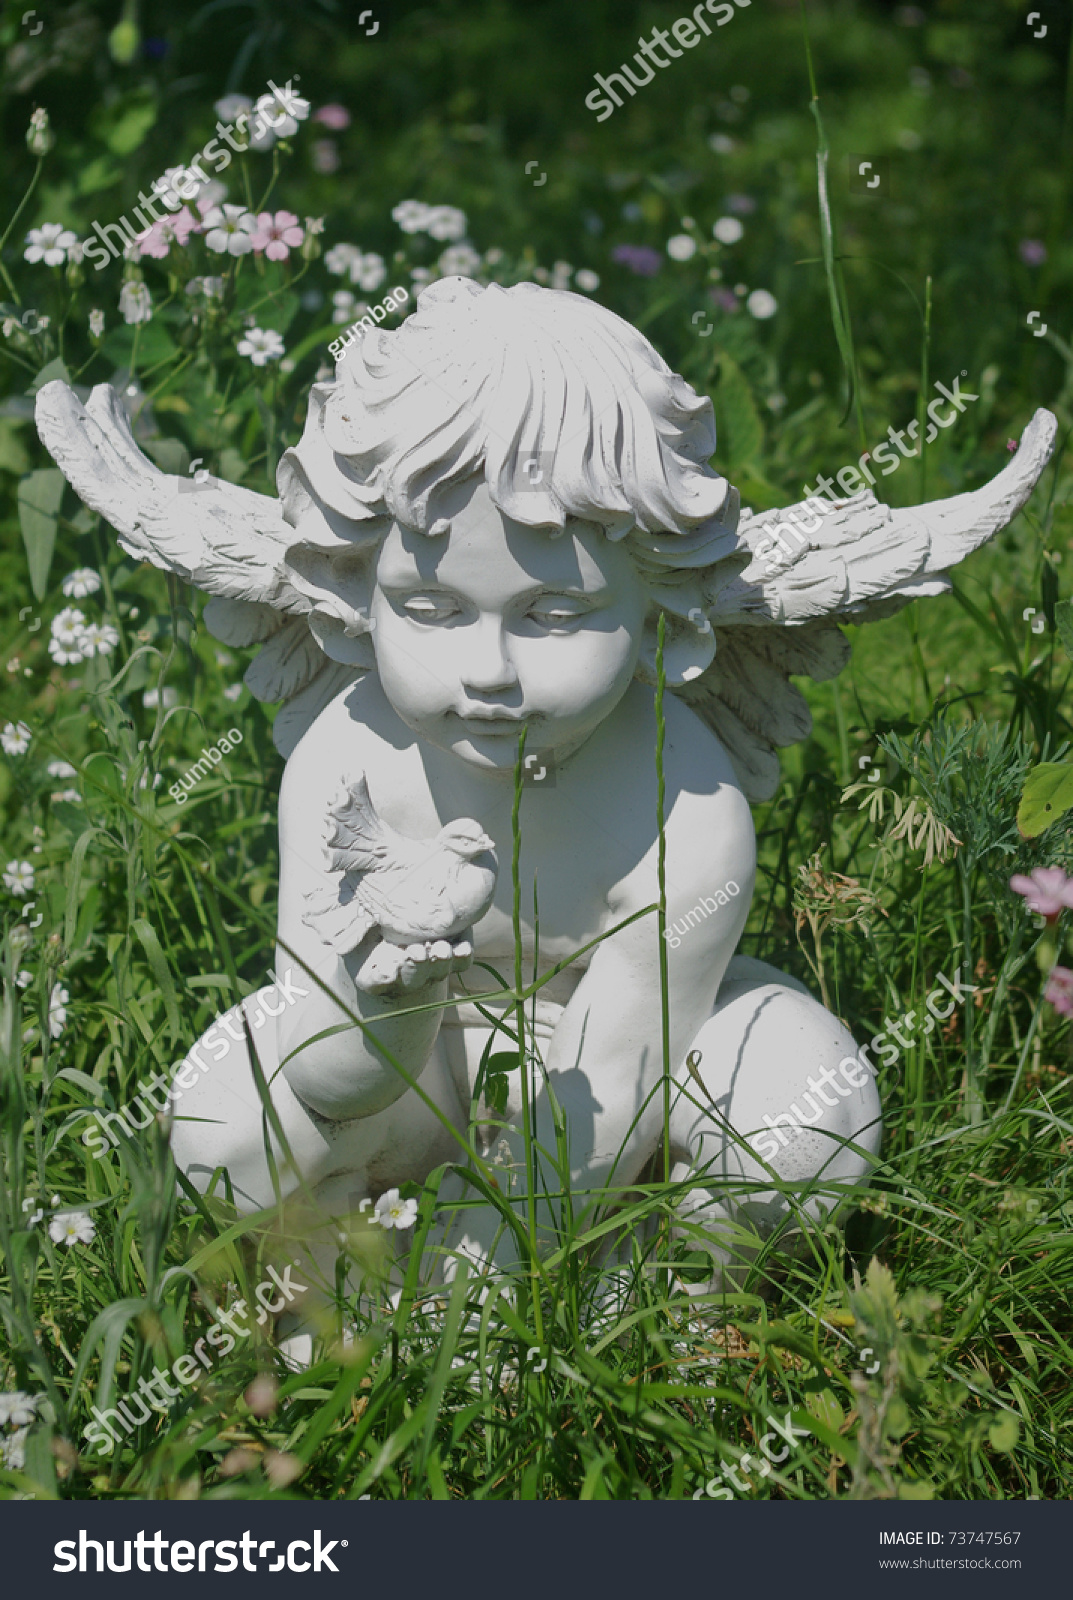 Garden Statue Angel Holding Dove Stock Photo 73747567 Shutterstock